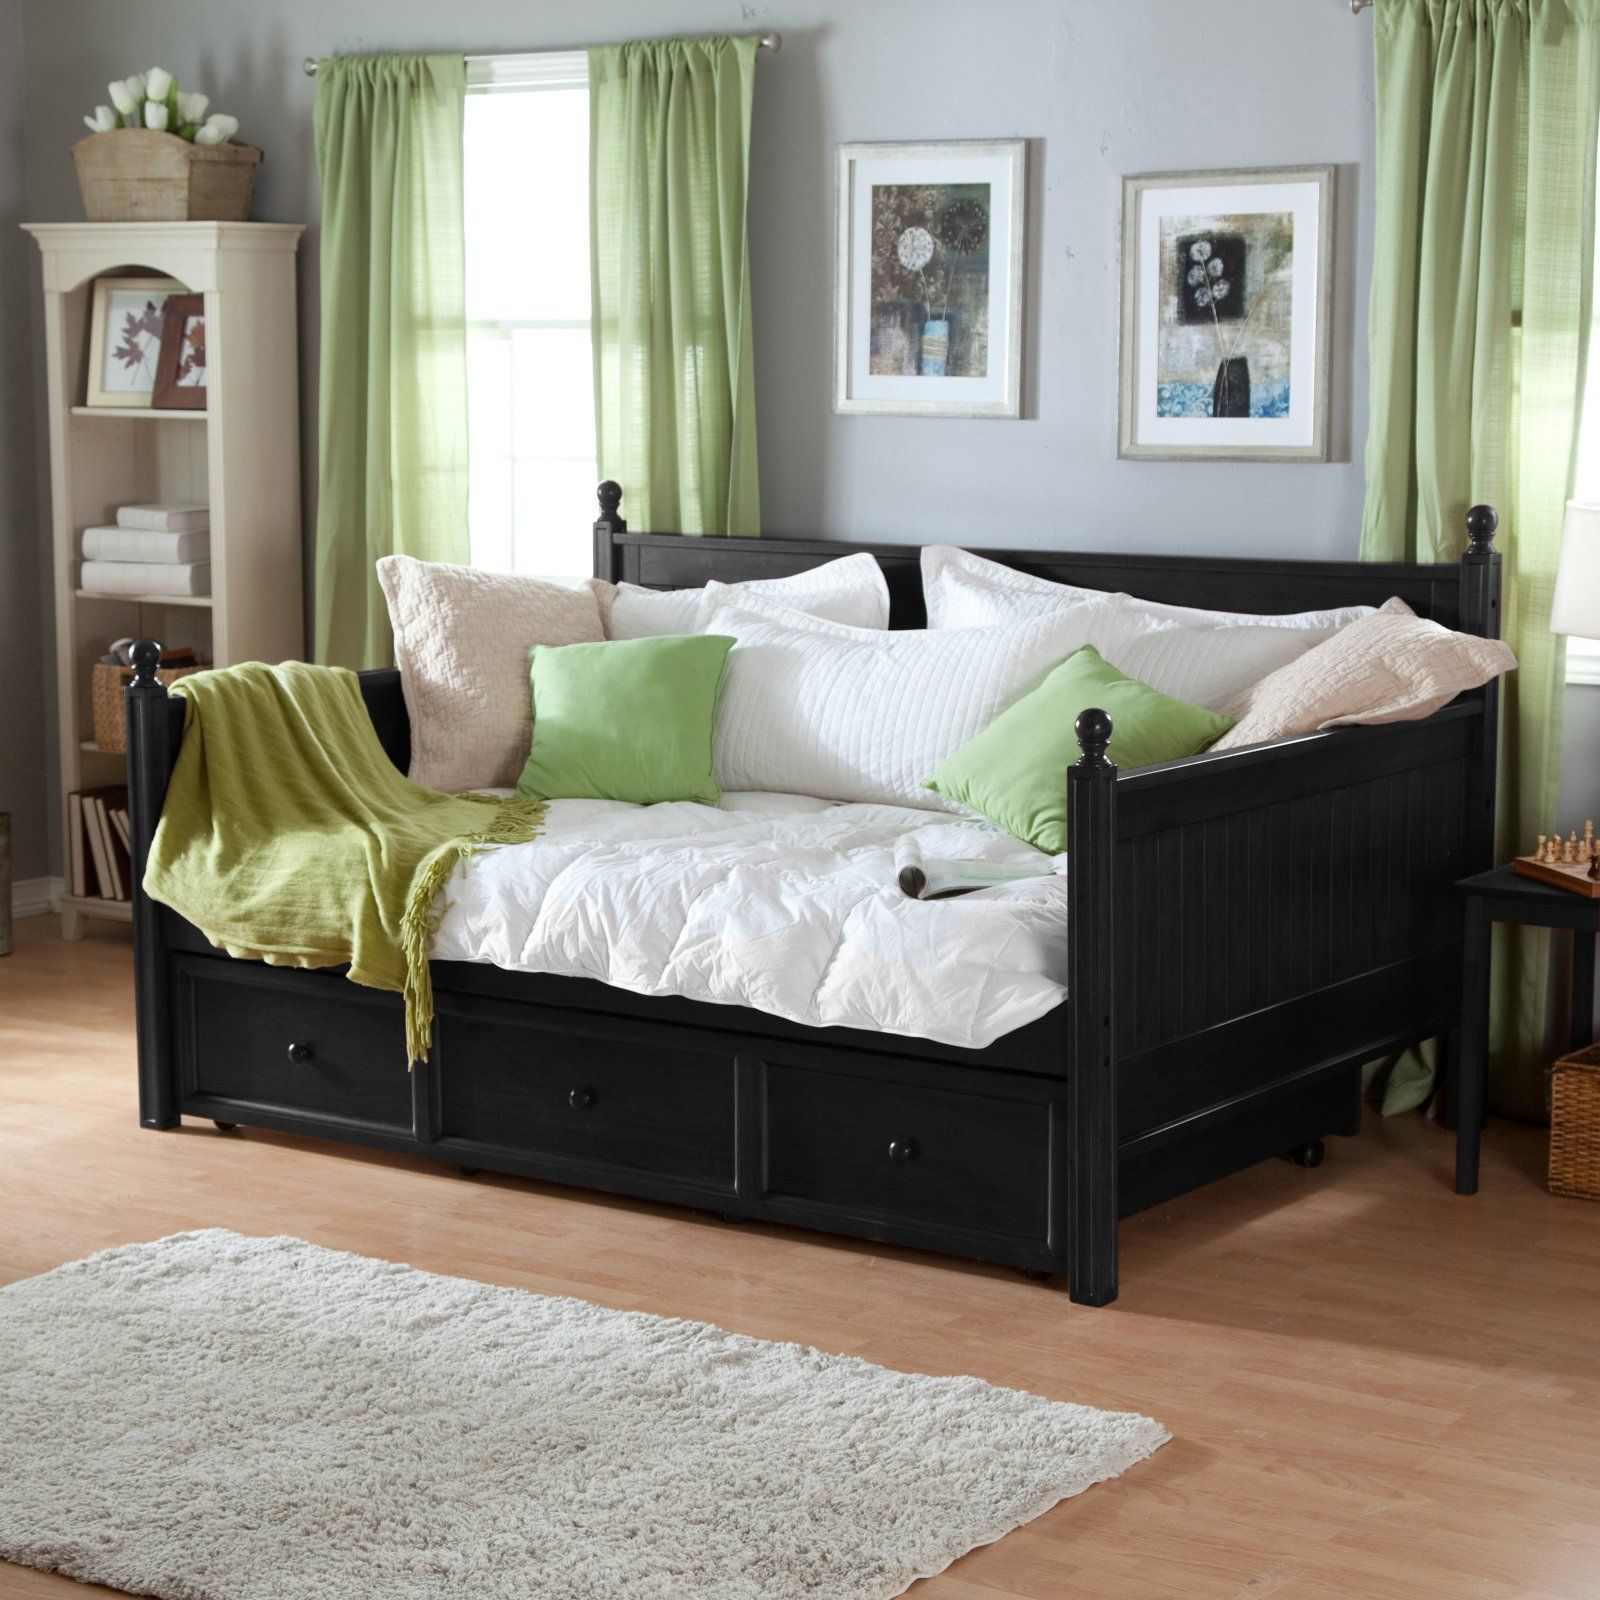 Full Size Daybed Would Be Super Cute In White And Would Create